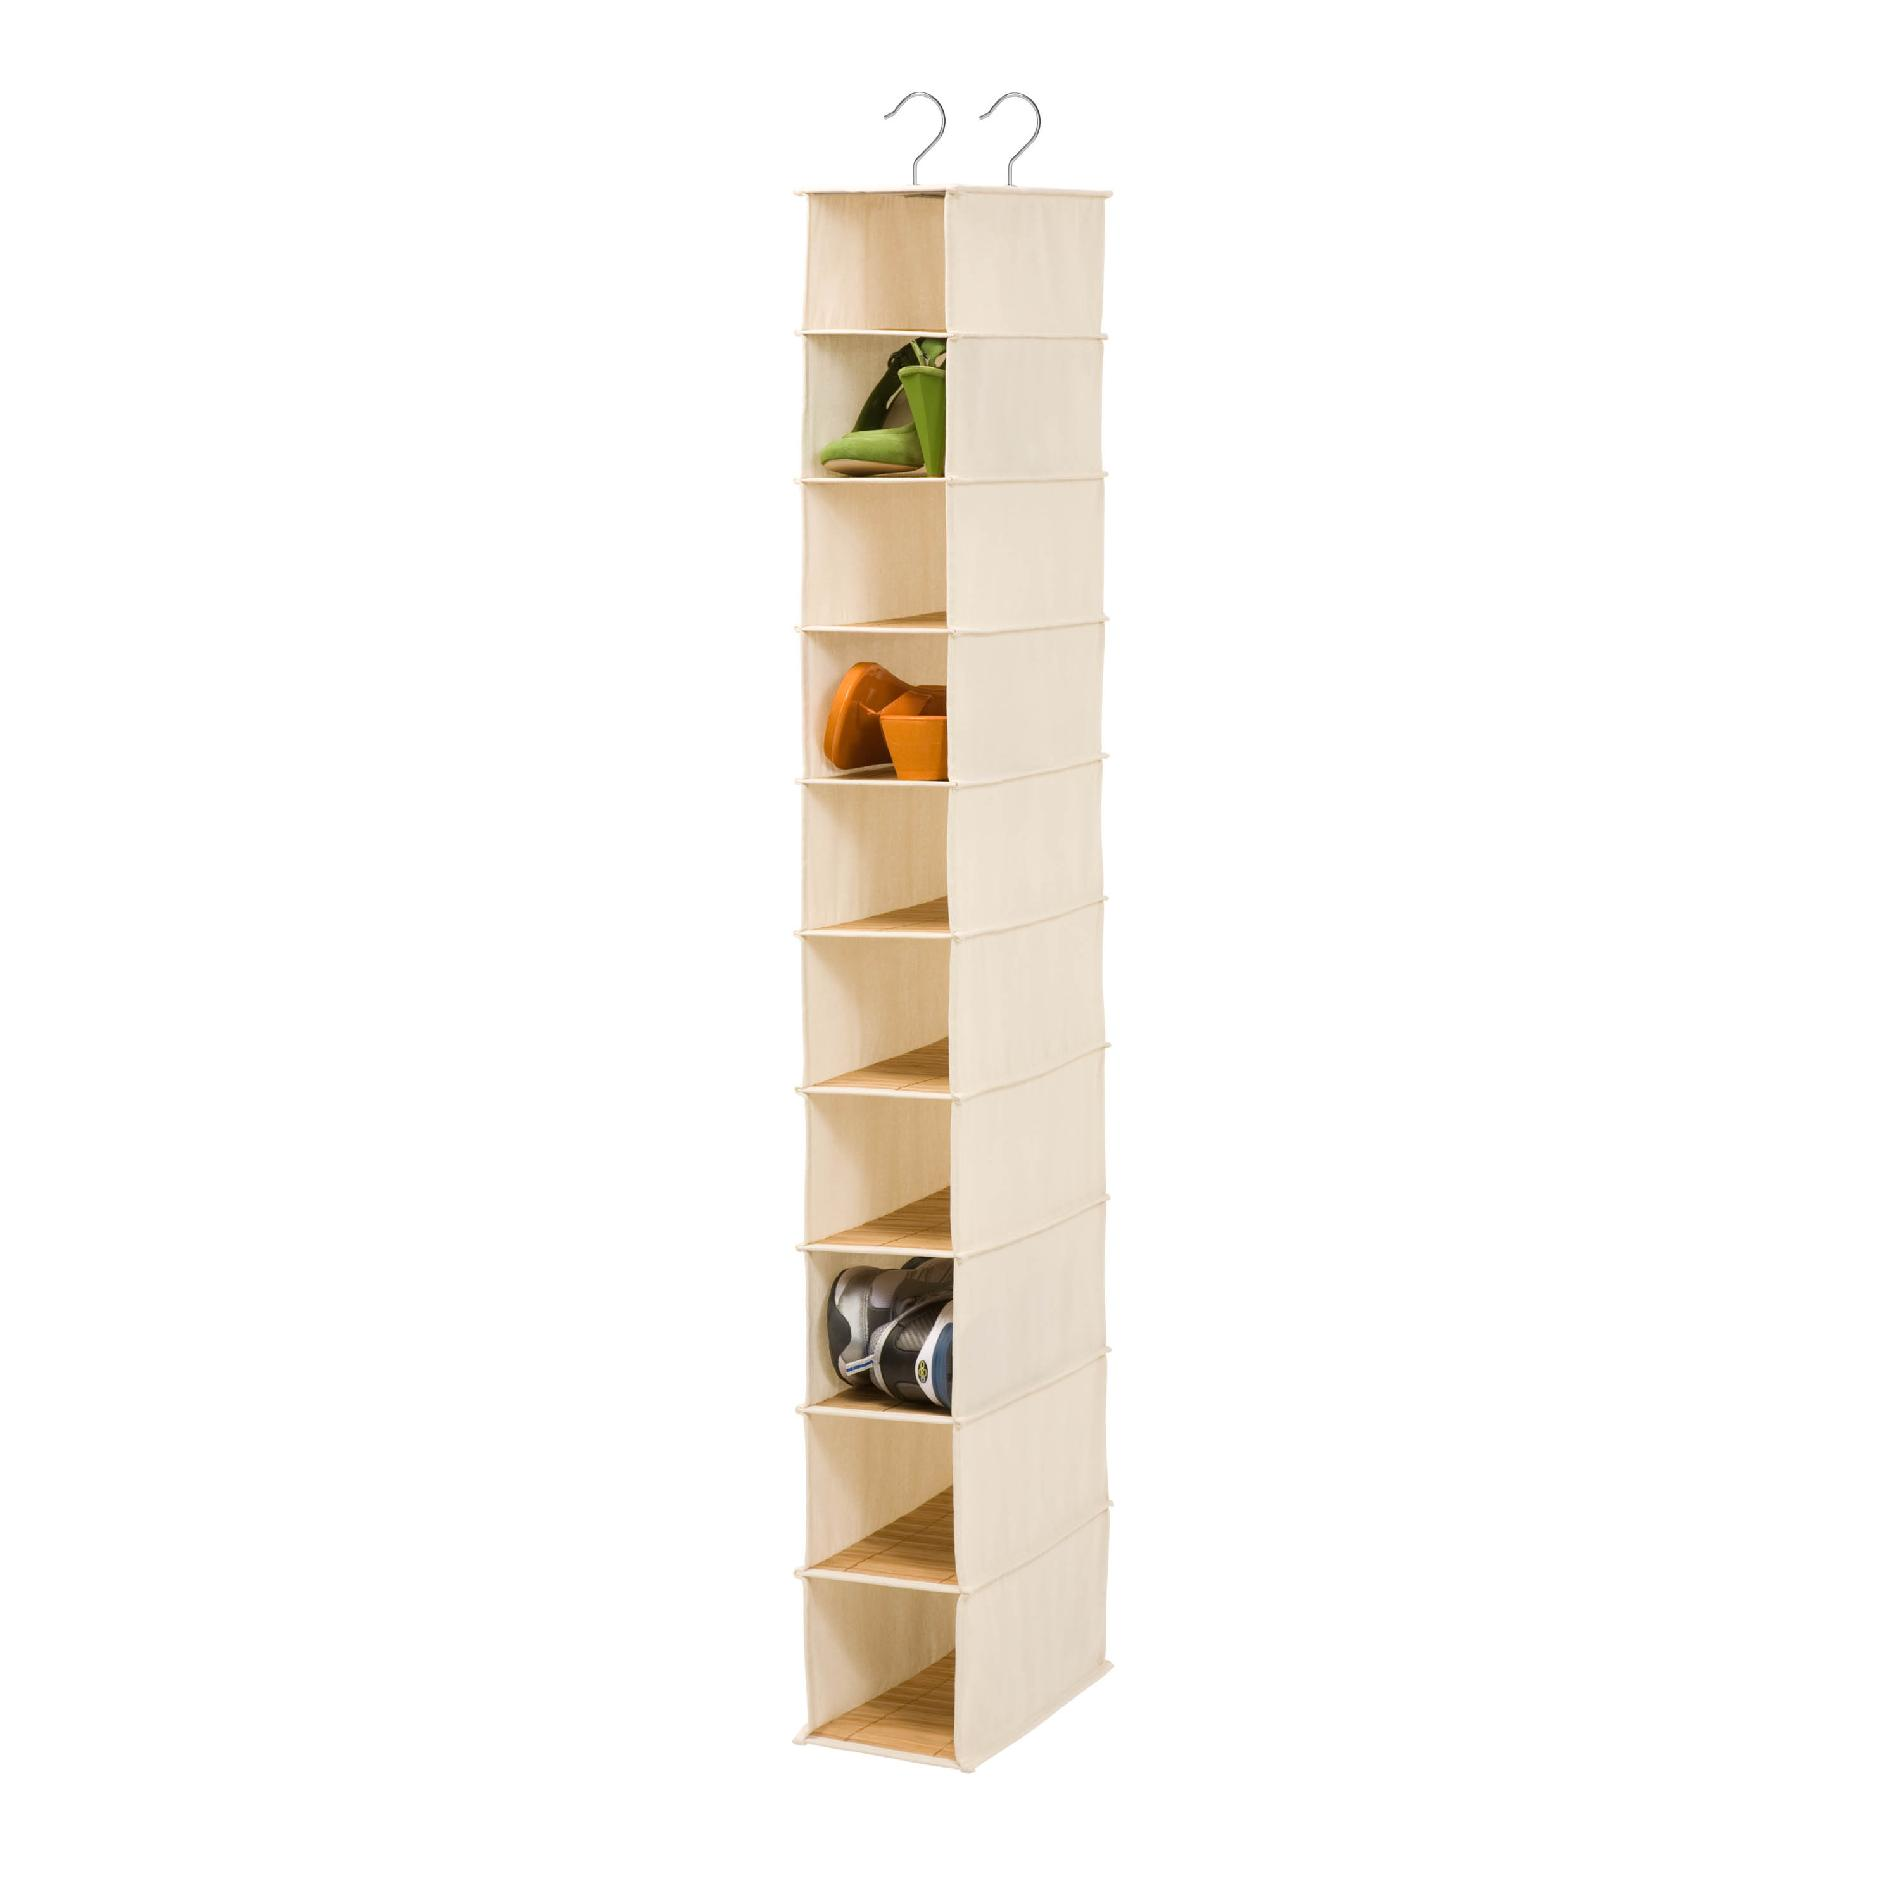 Honey Can Do 10 Shelf Shoe Organizer - Bamboo